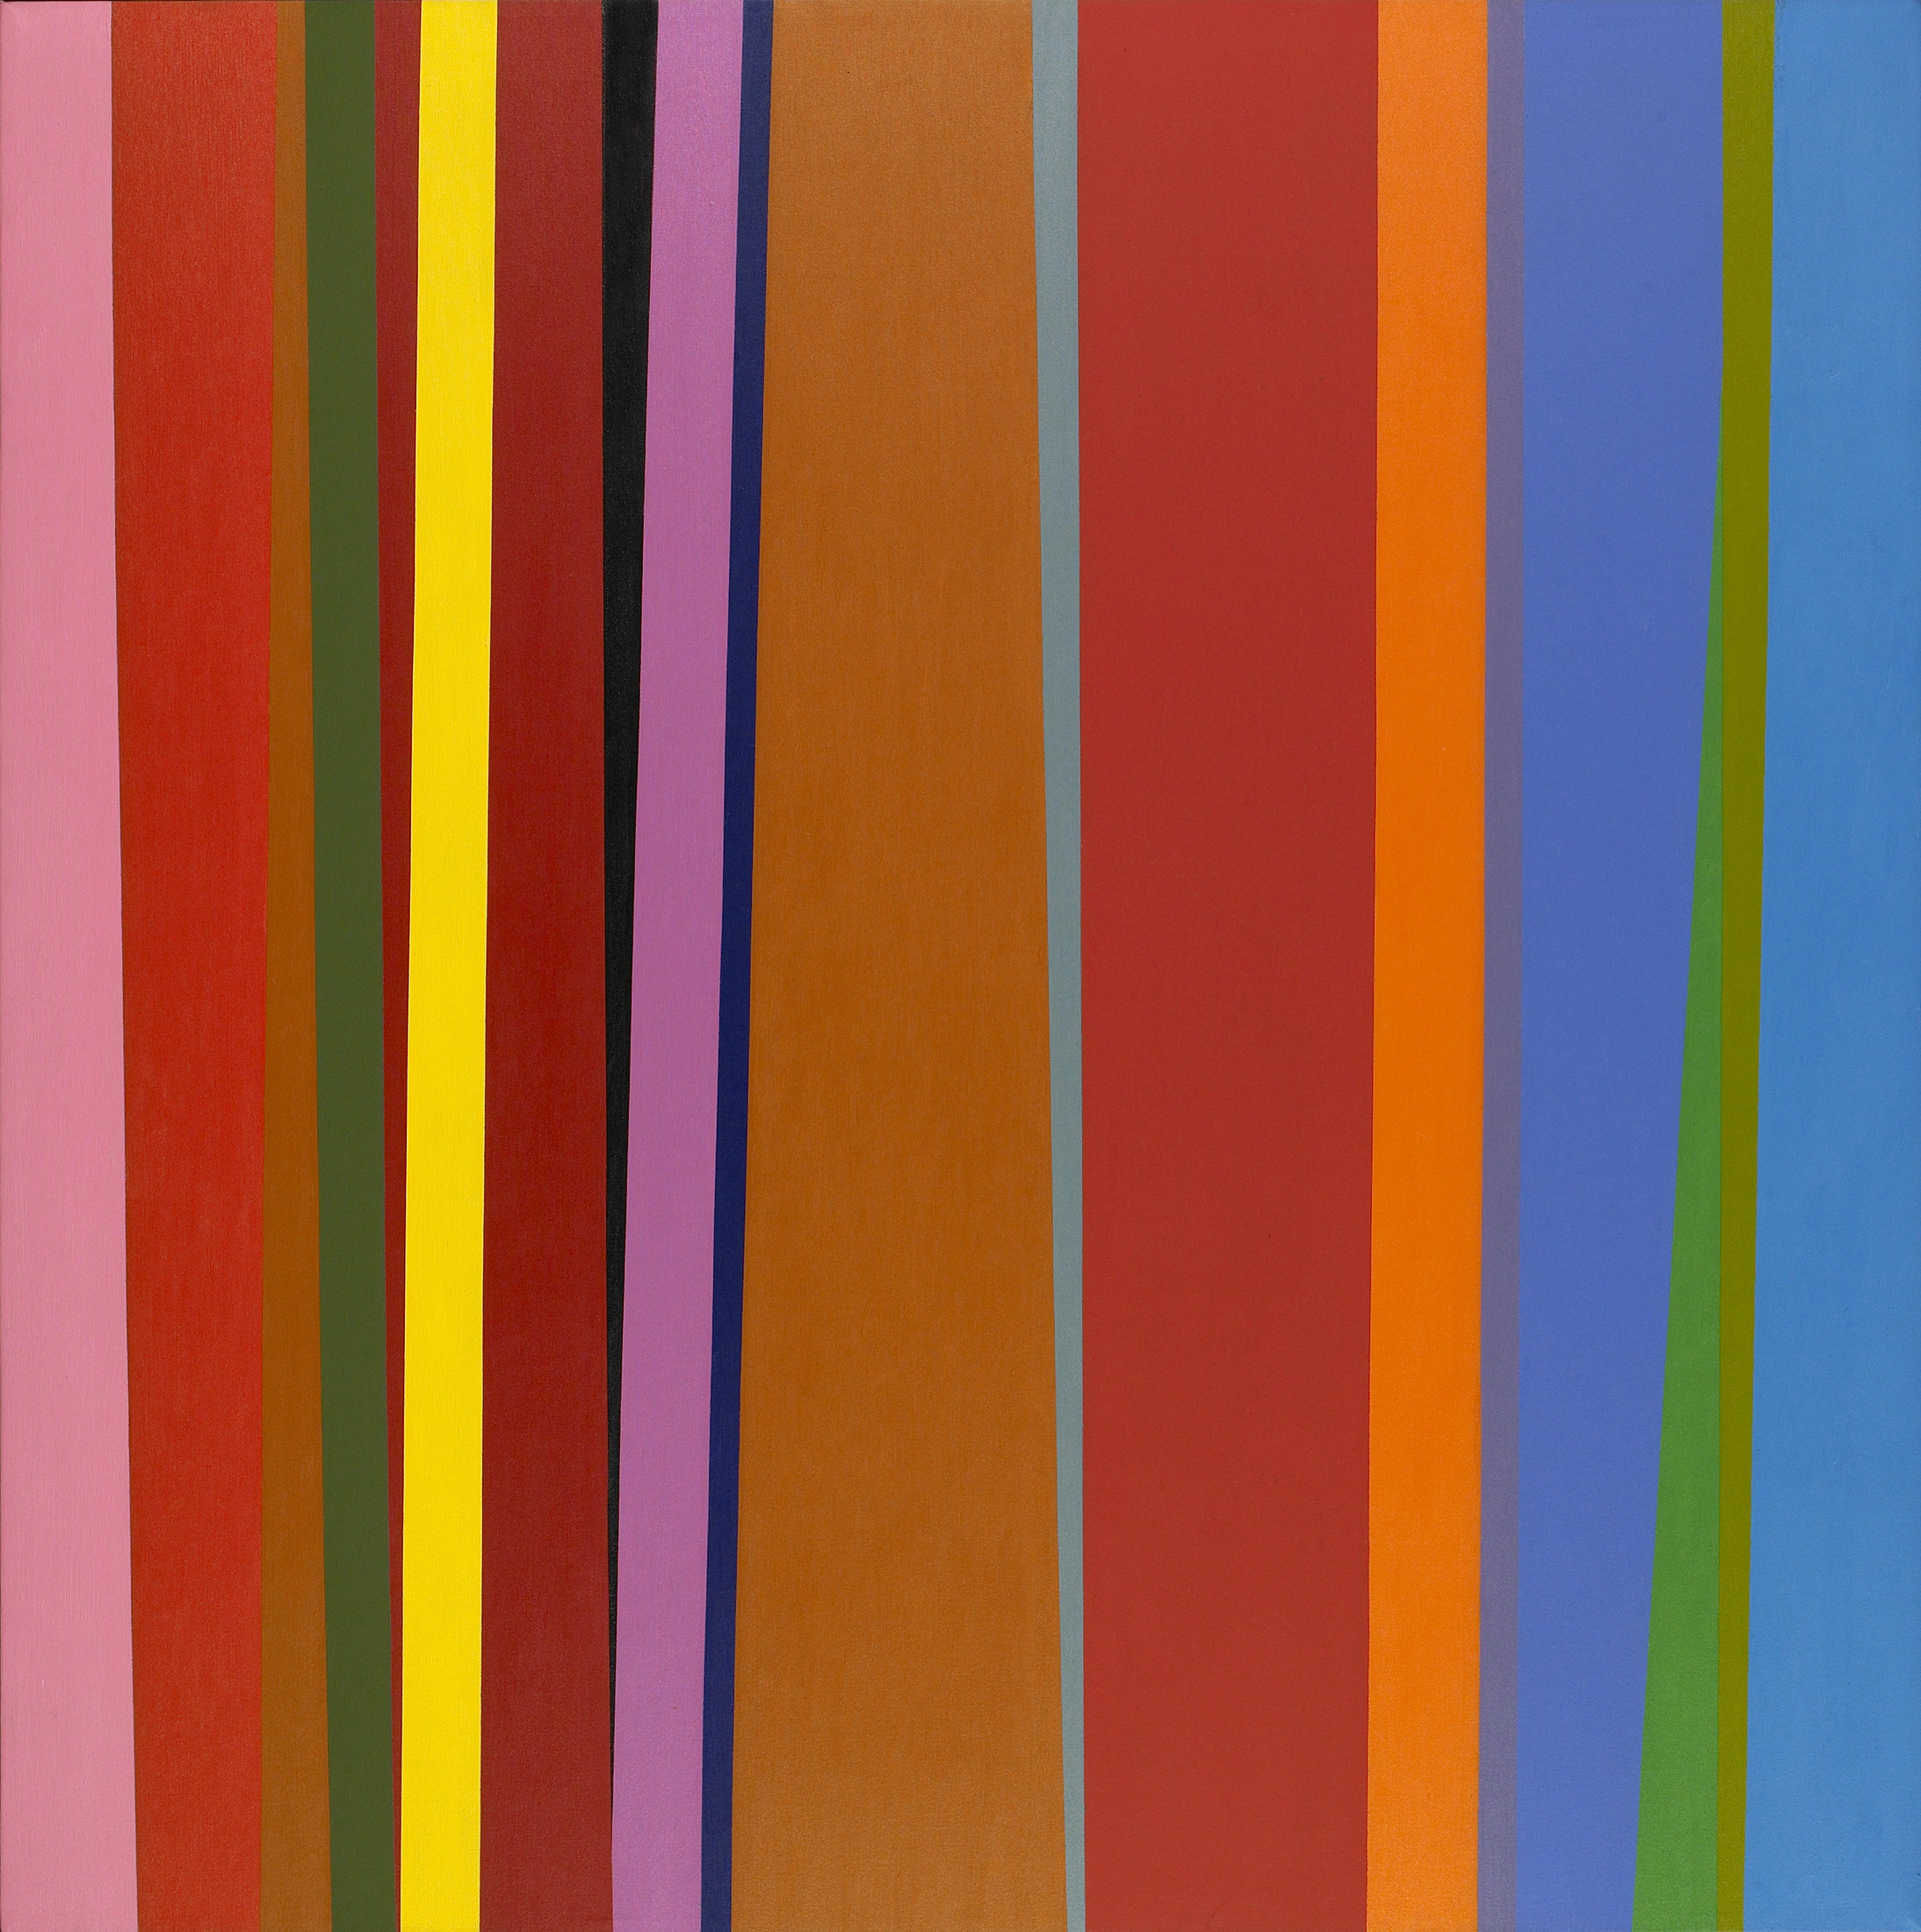 Jay Rosenblum ,  Chrysalis III, c. 1979 , oil on canvas, 50 x 50 inches